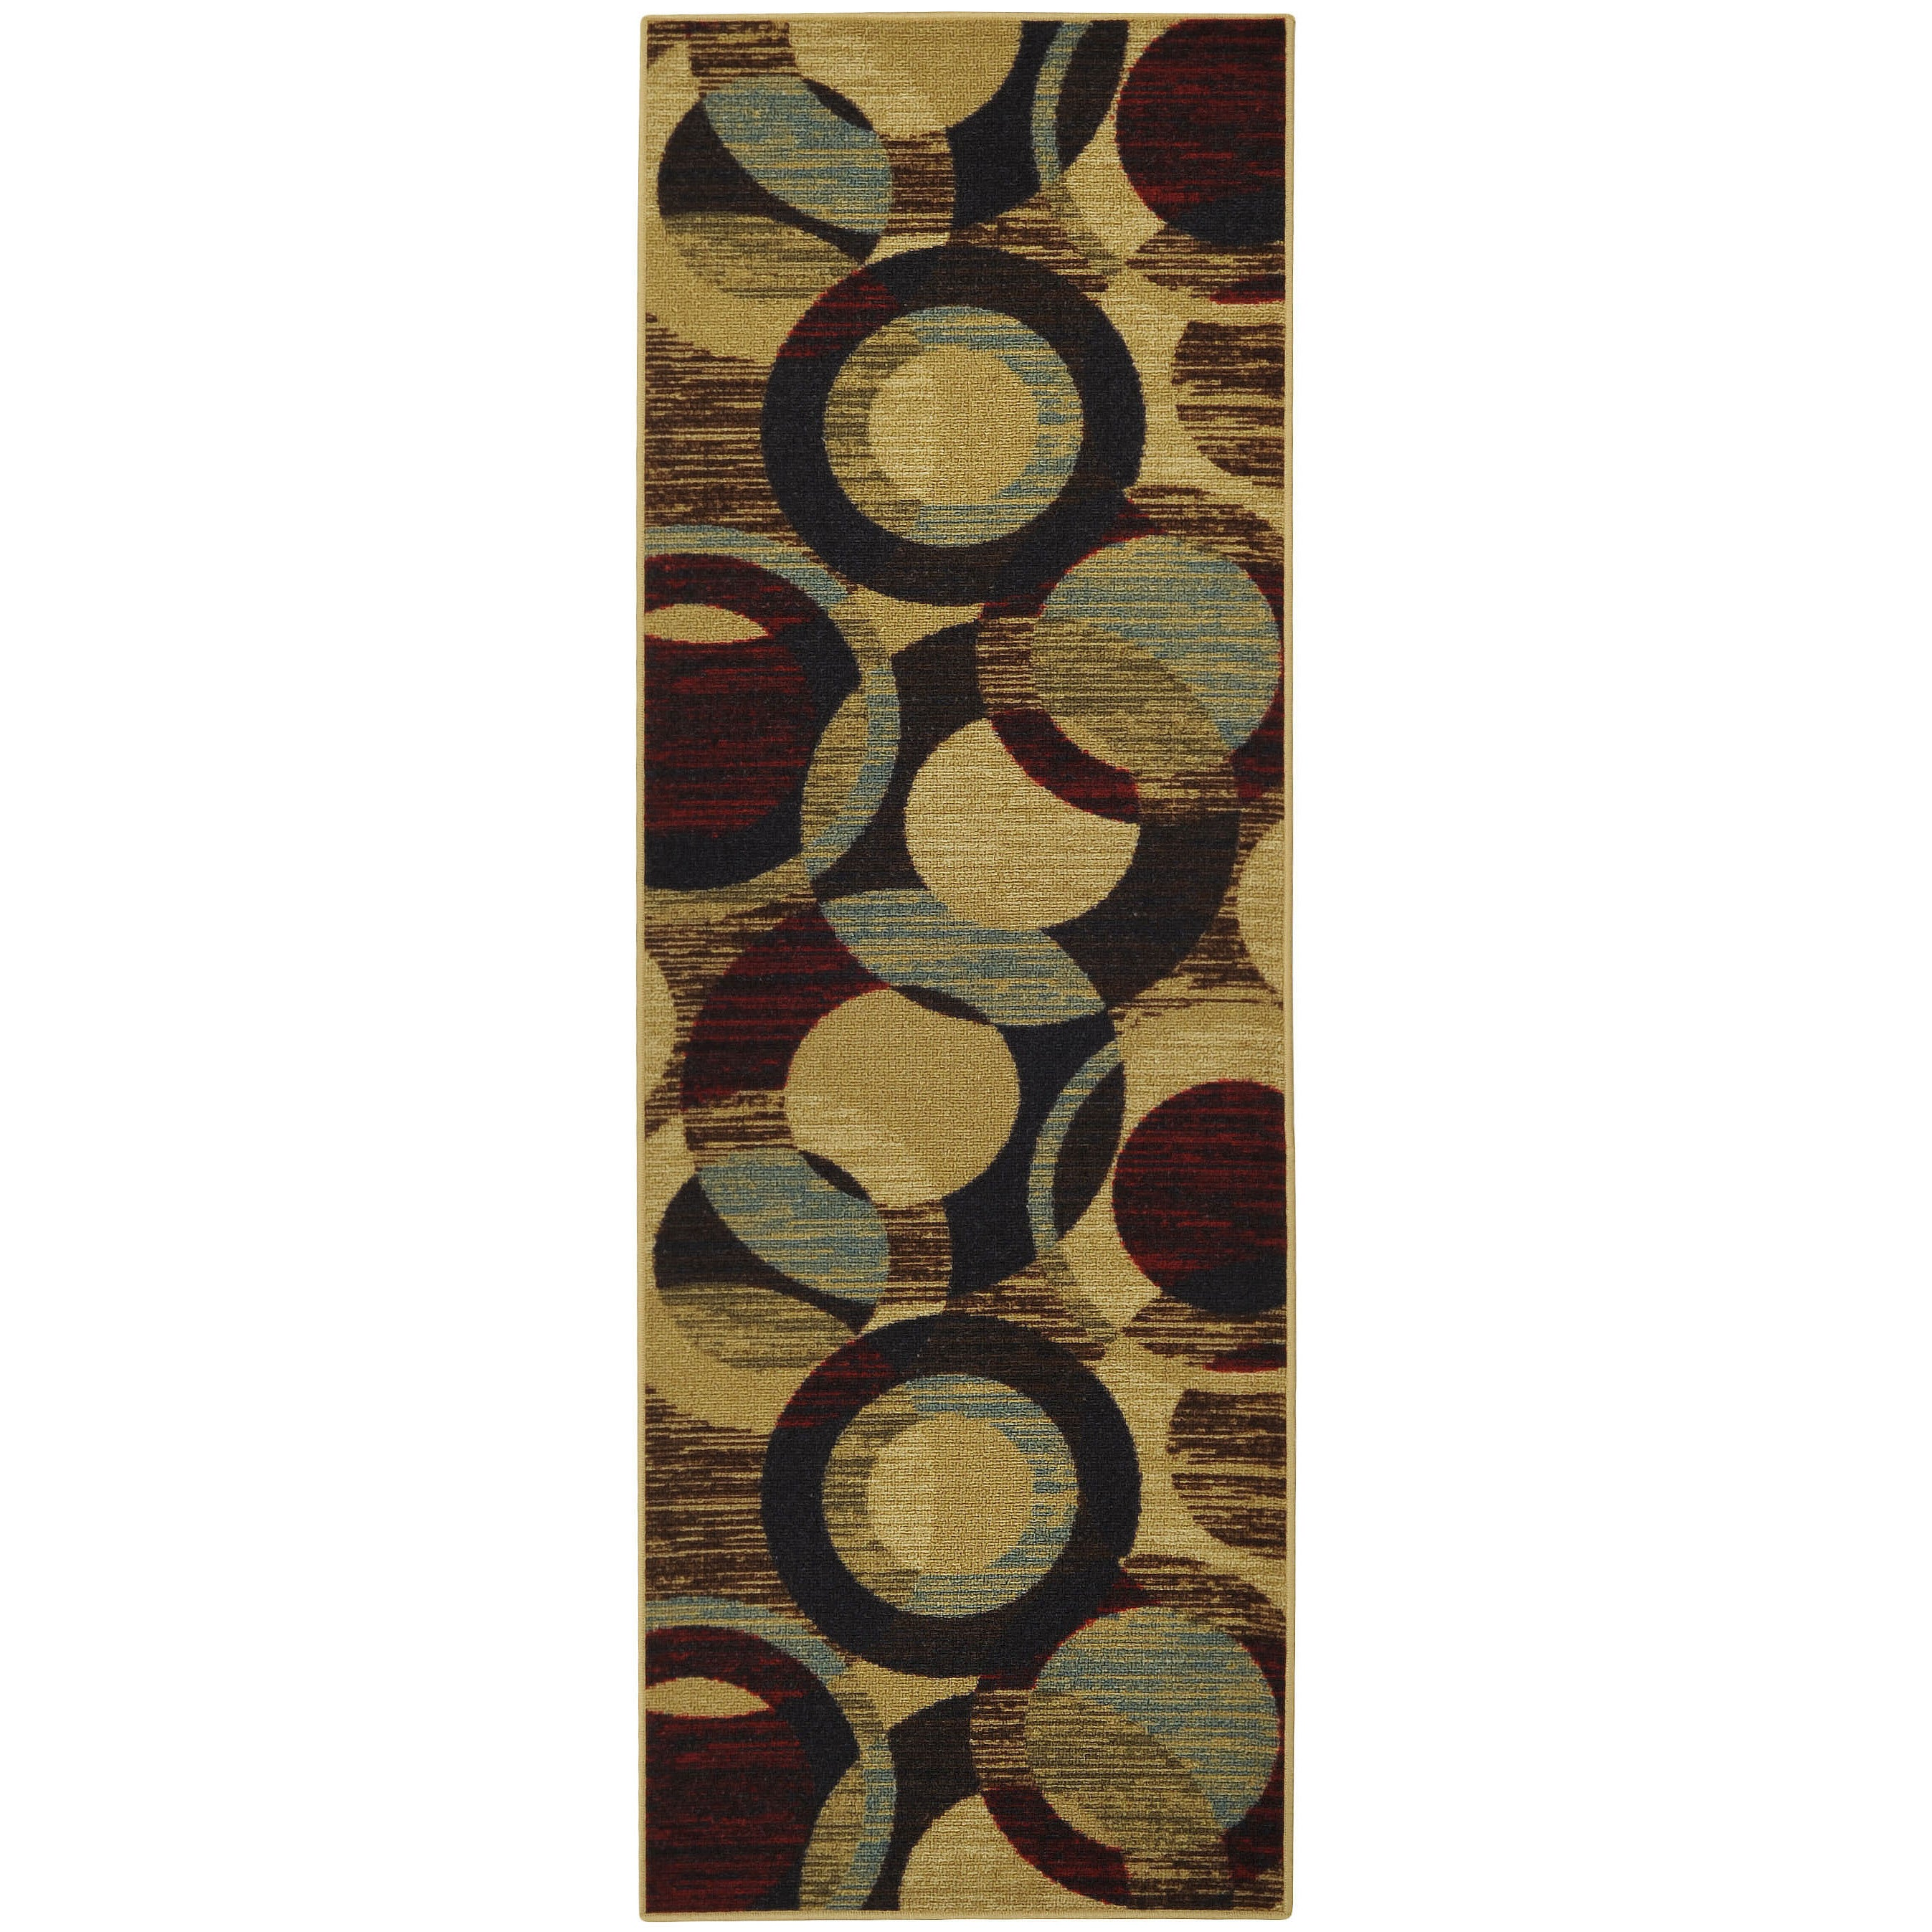 "Rubber Back Multicolored Contemporary Circles Non-Skid Runner Rug (22"" x 6'9) at Sears.com"